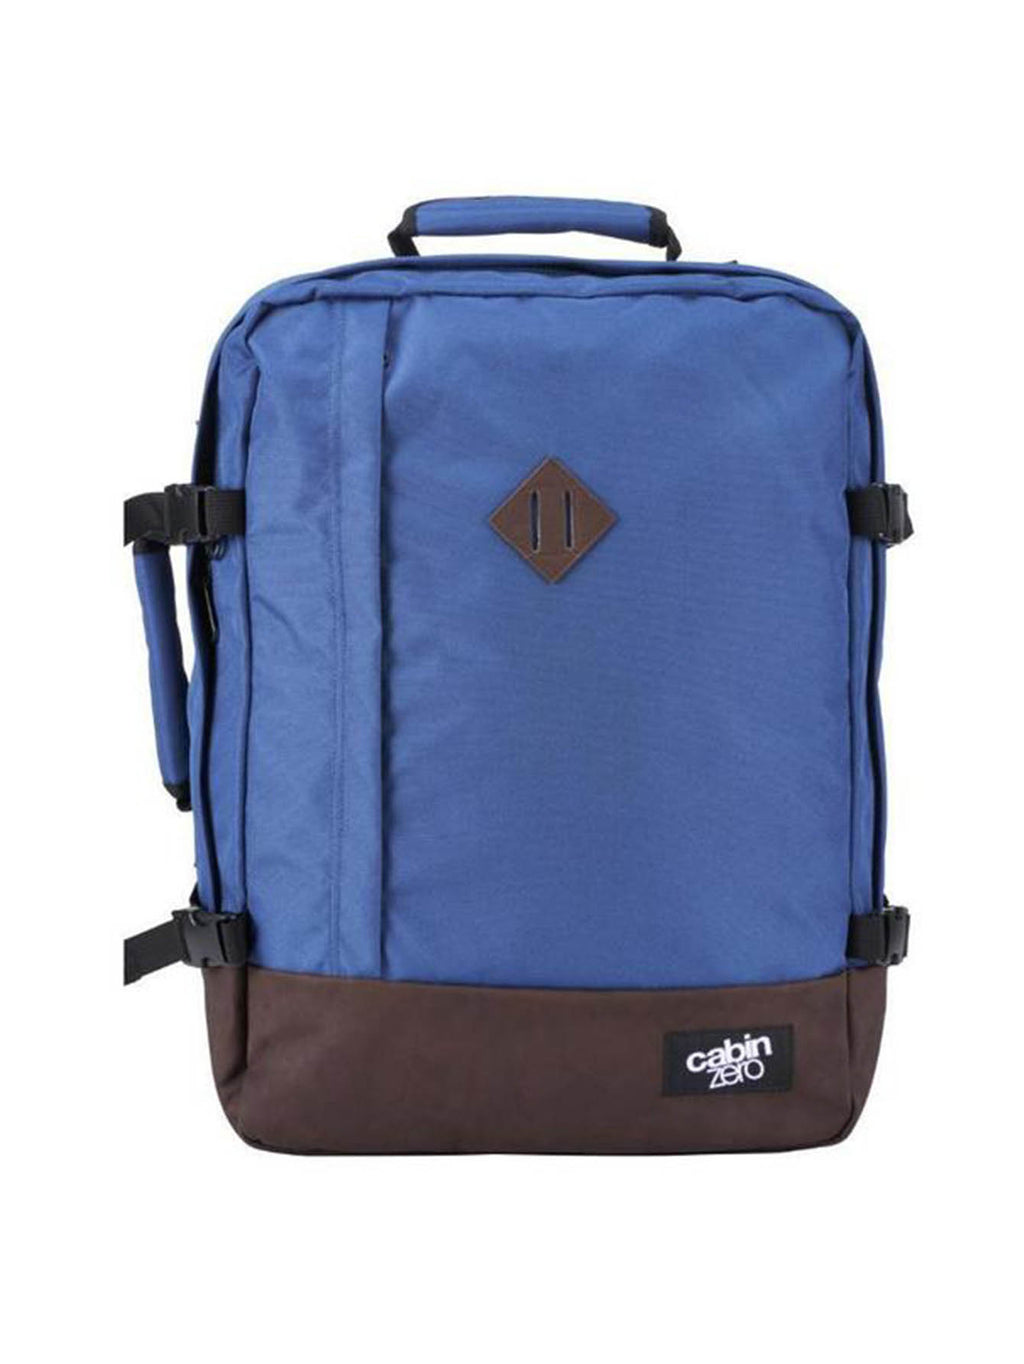 Cabinzero Vintage 44L in Navy Color - This Is For Him